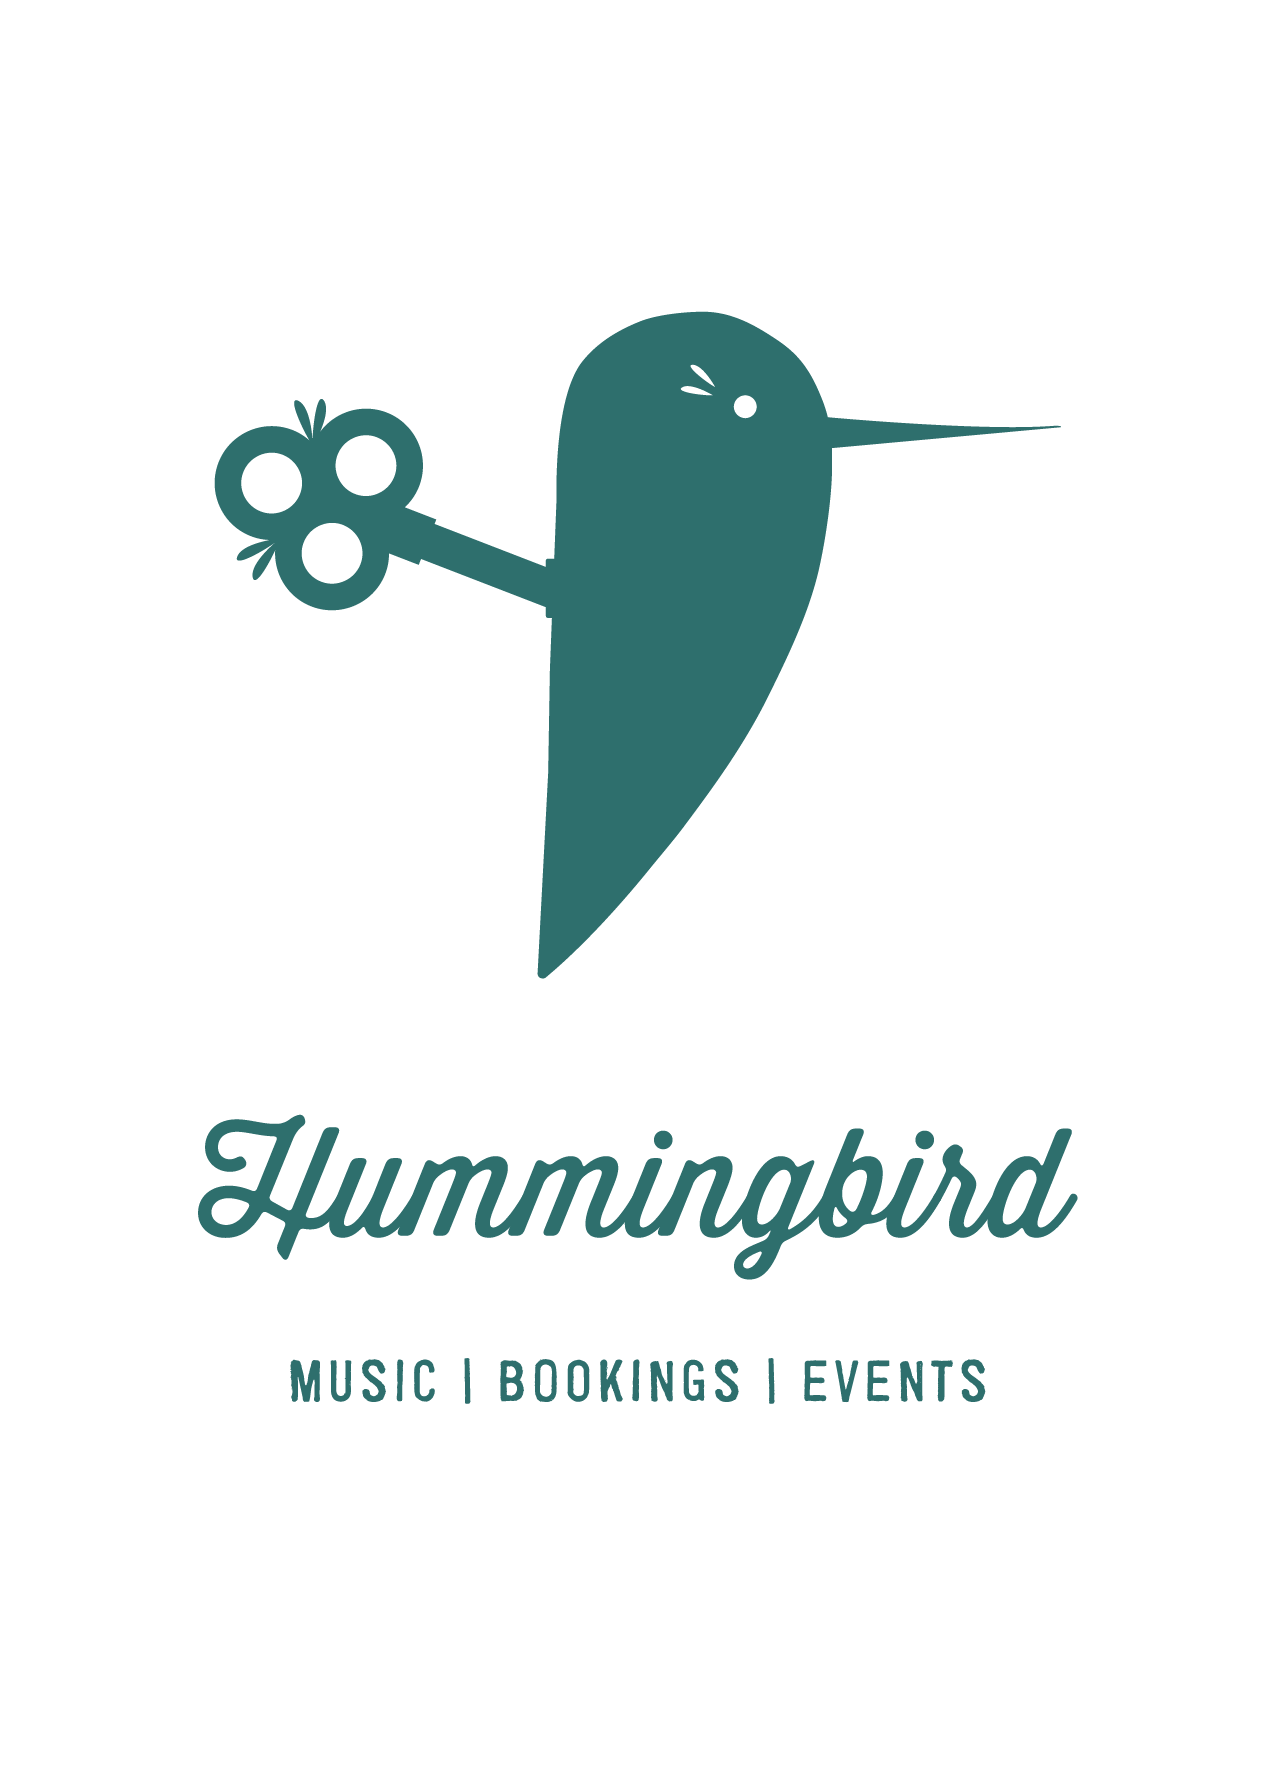 Hummingbird Music